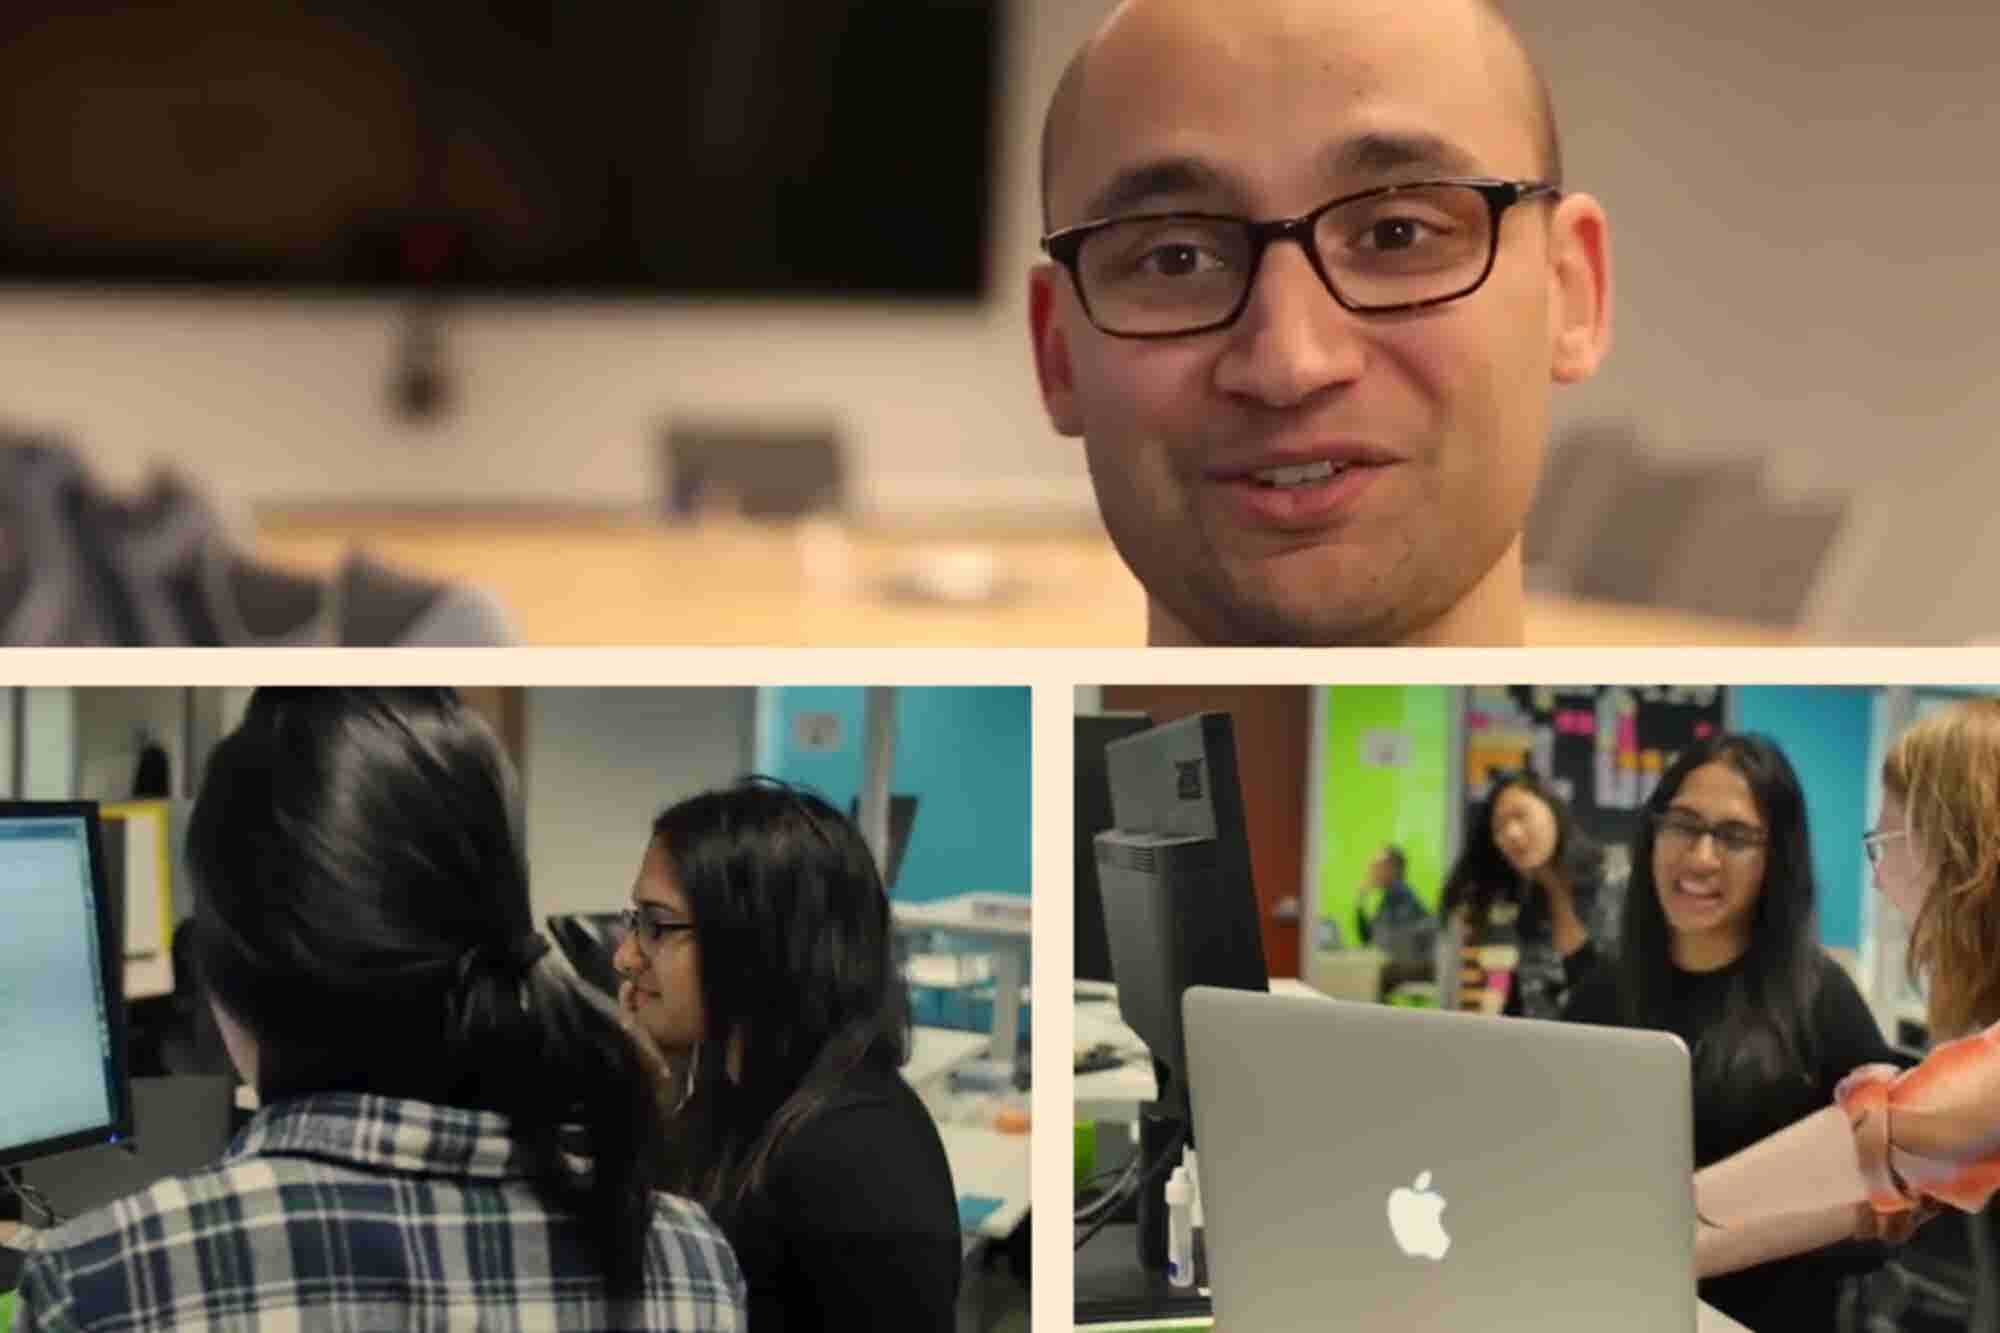 The Unconventional Way This Cloud-Based Startup Broke Into the Education Sphere